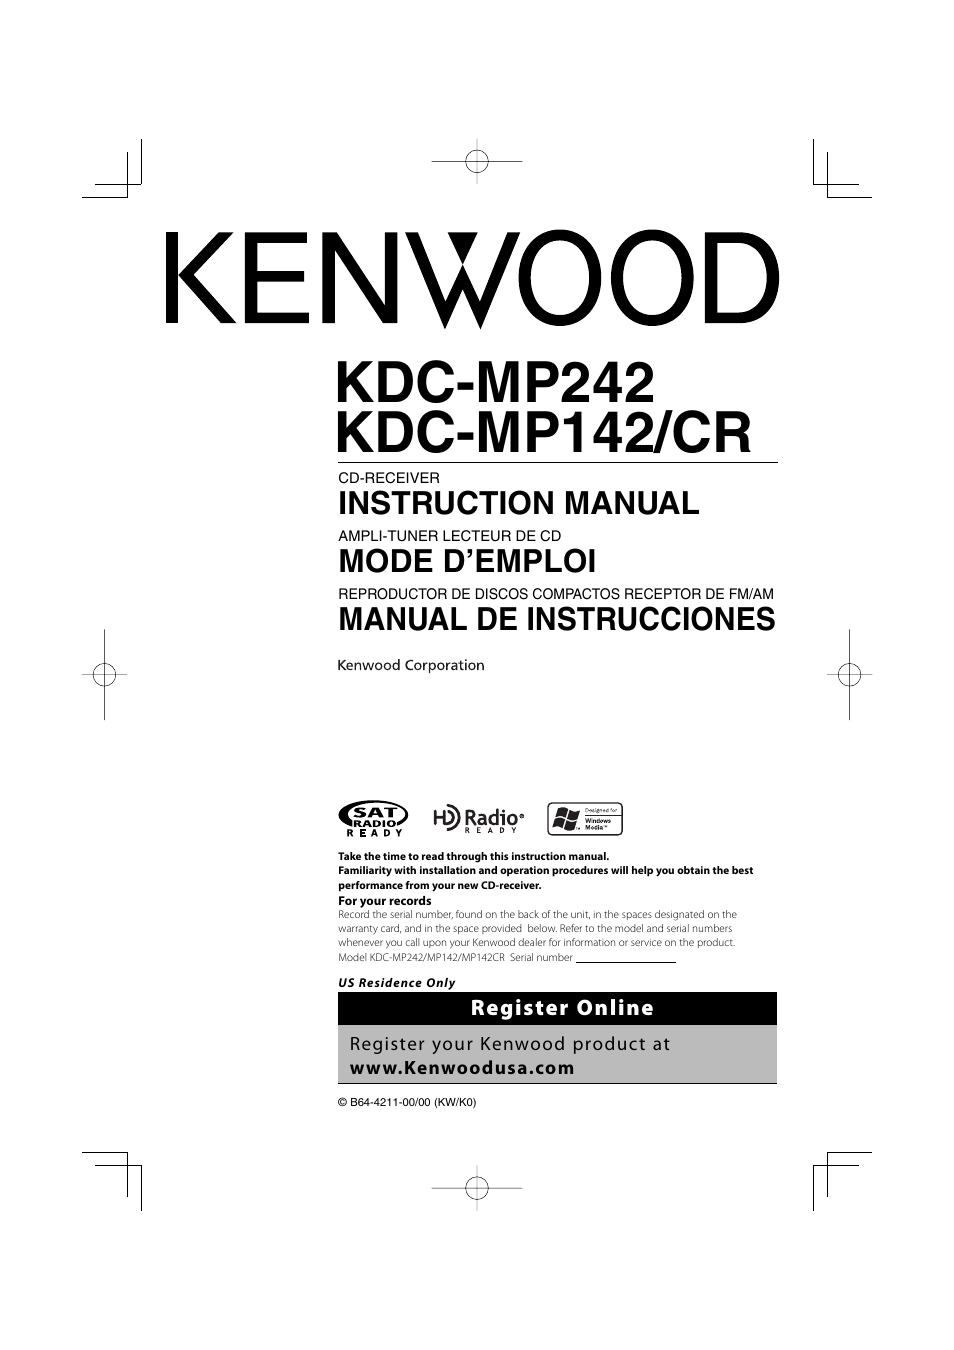 Charming kdc mp142 wires gallery electrical system block diagram kenwood kdc mp142 wiring diagram efcaviation pooptronica Choice Image